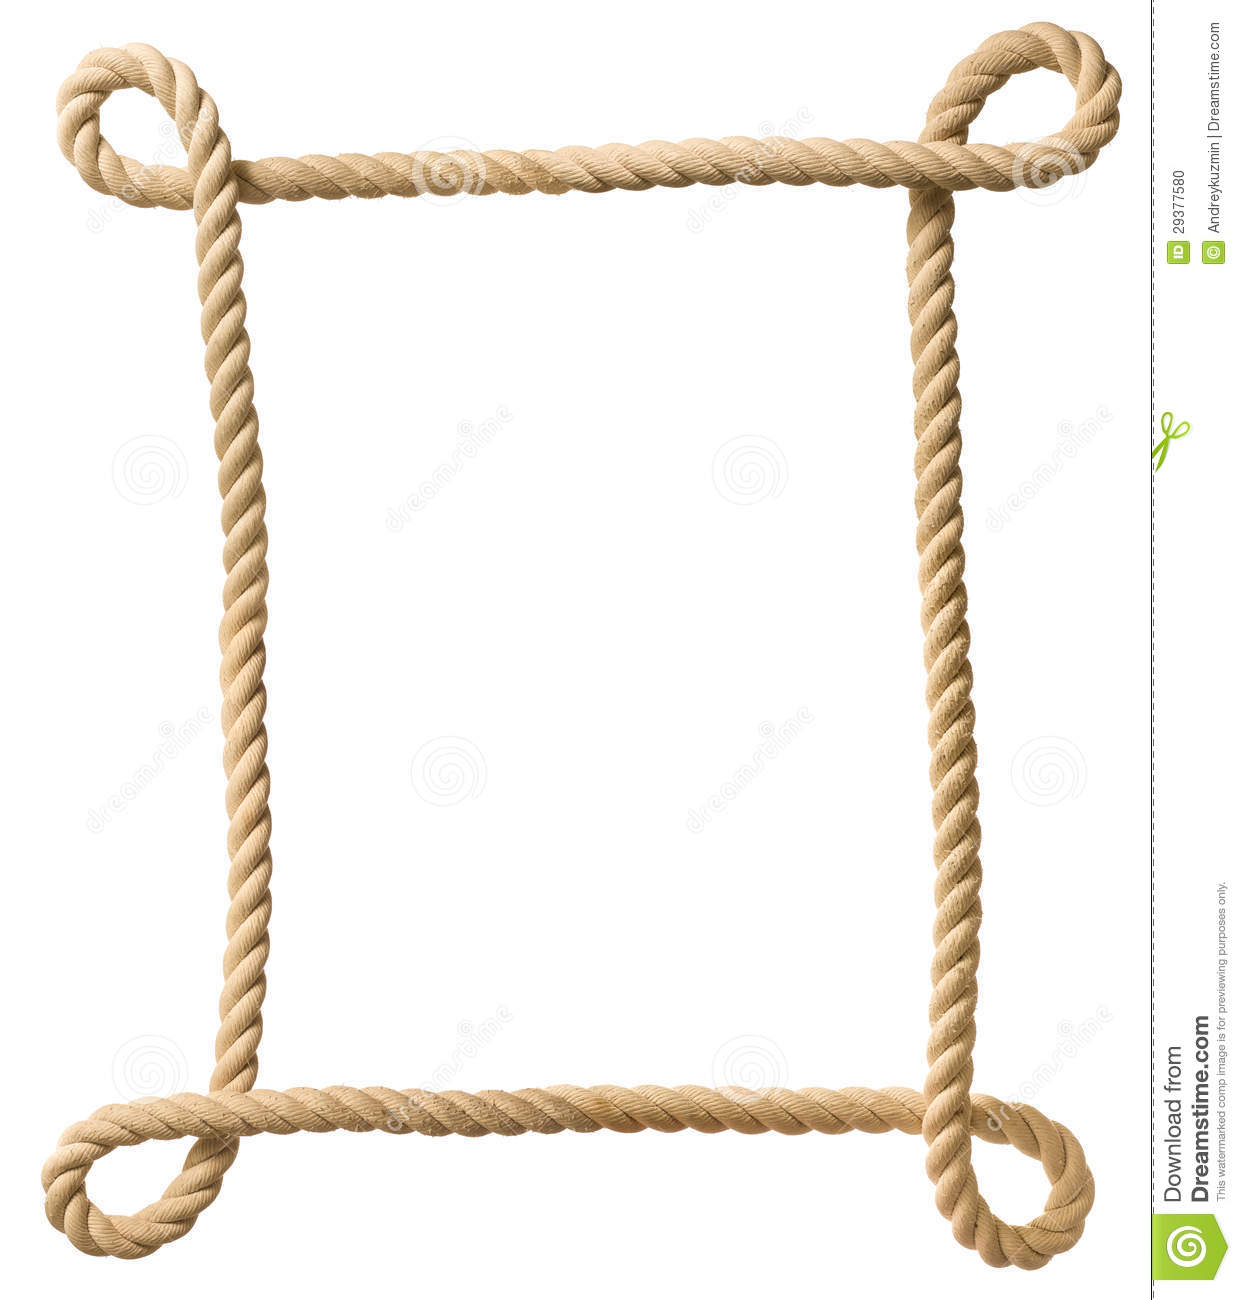 Rope frame stock photo image of rope design border Rope photo frame